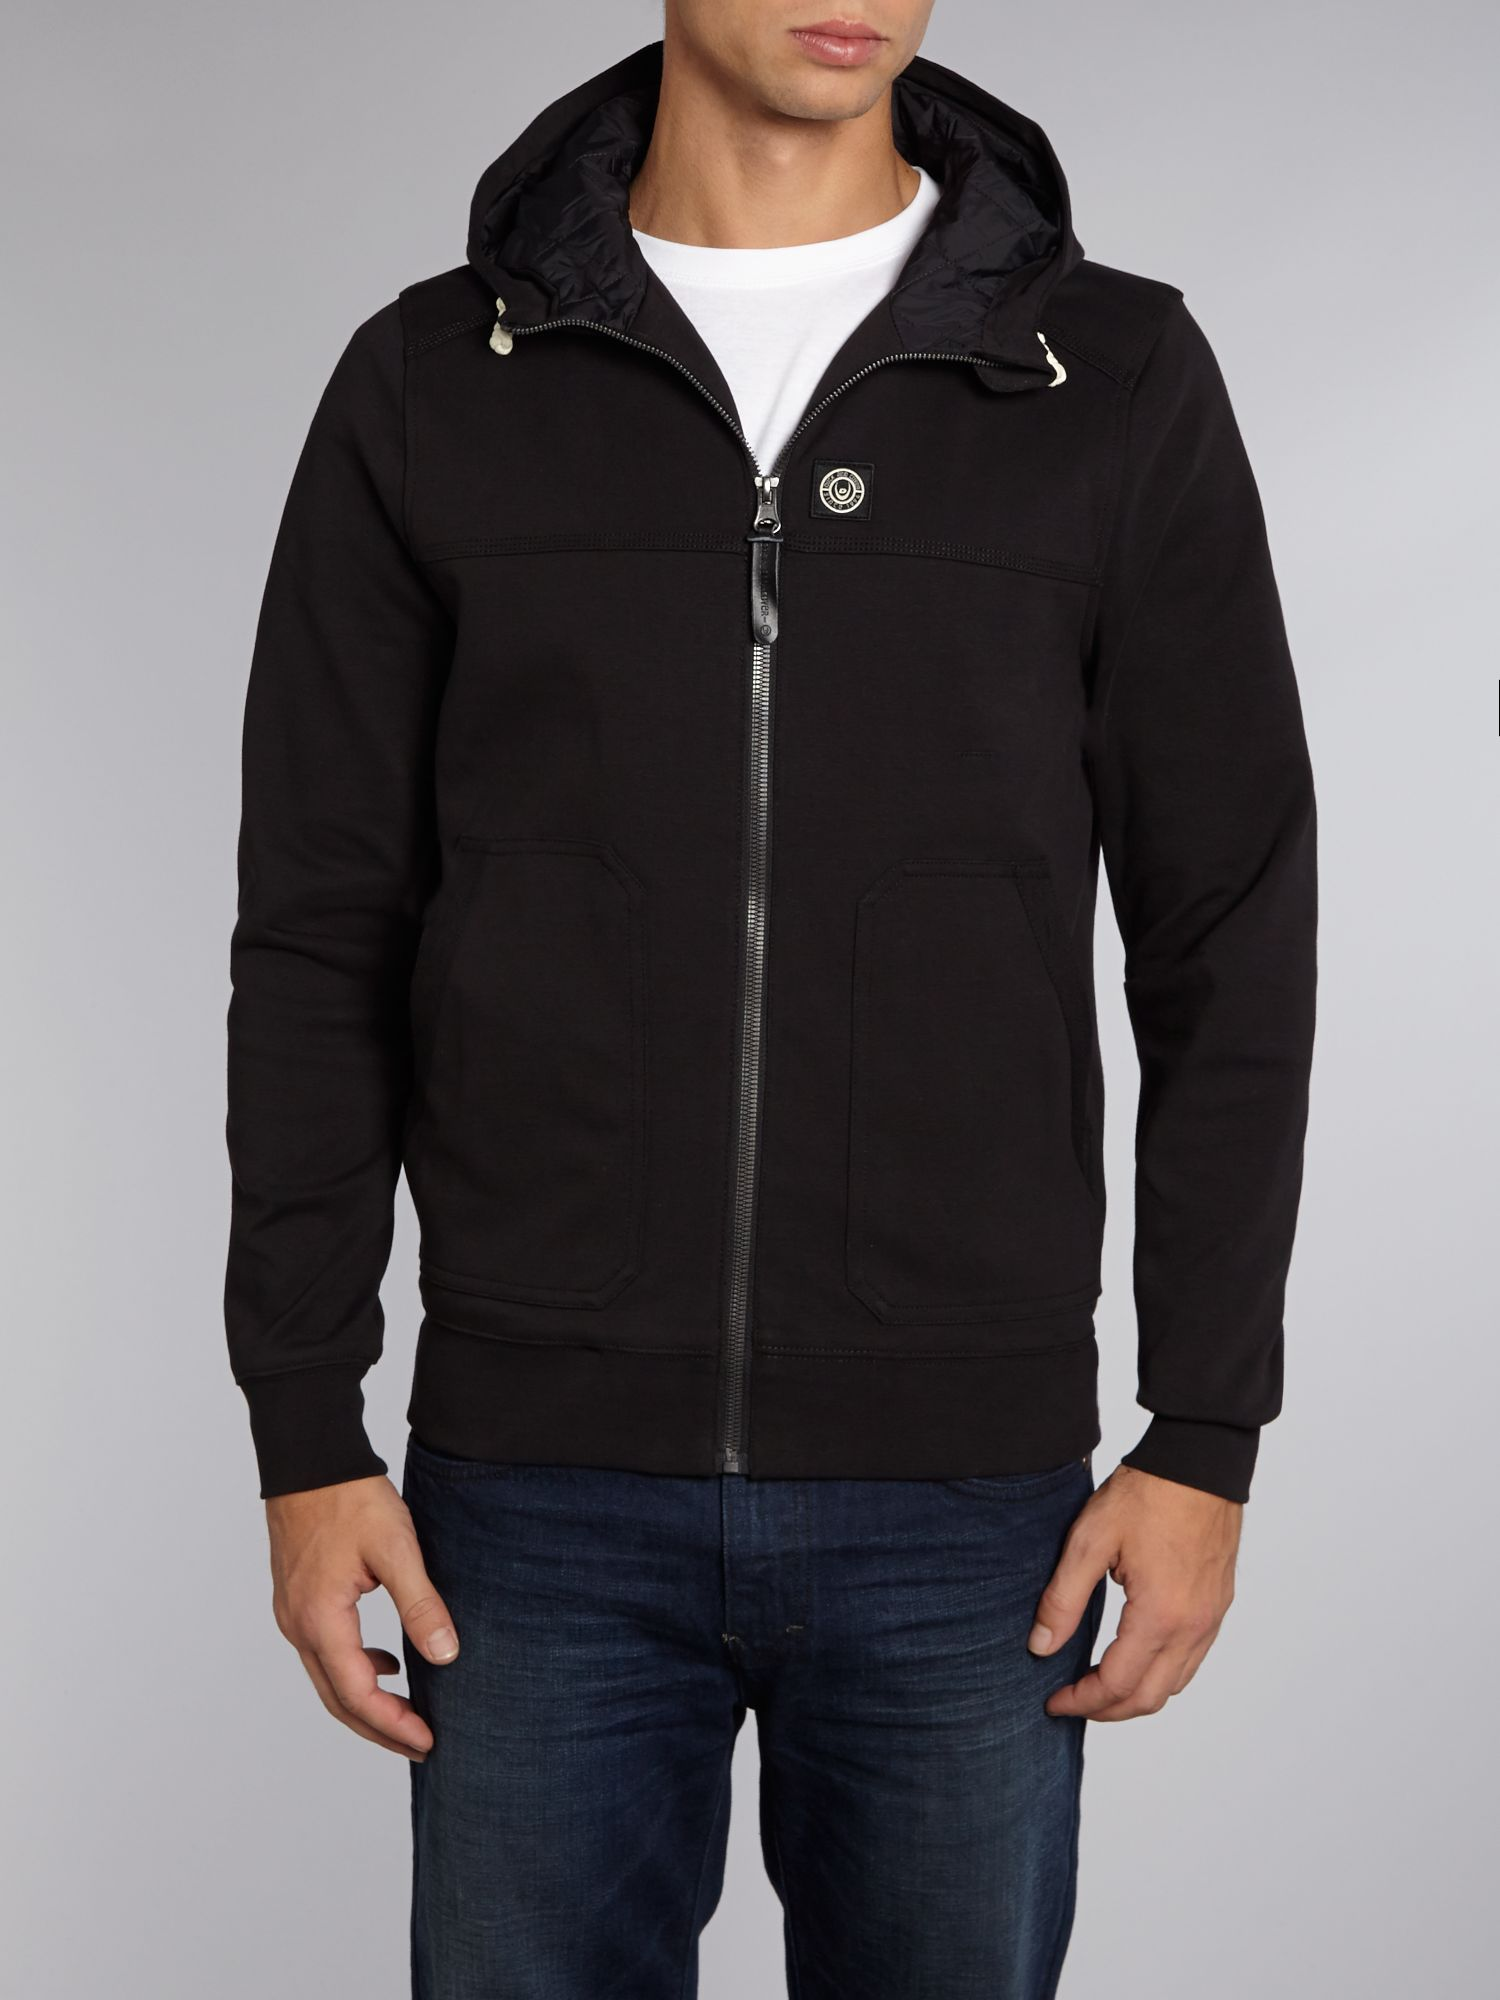 Hooded zip up sweatshirt